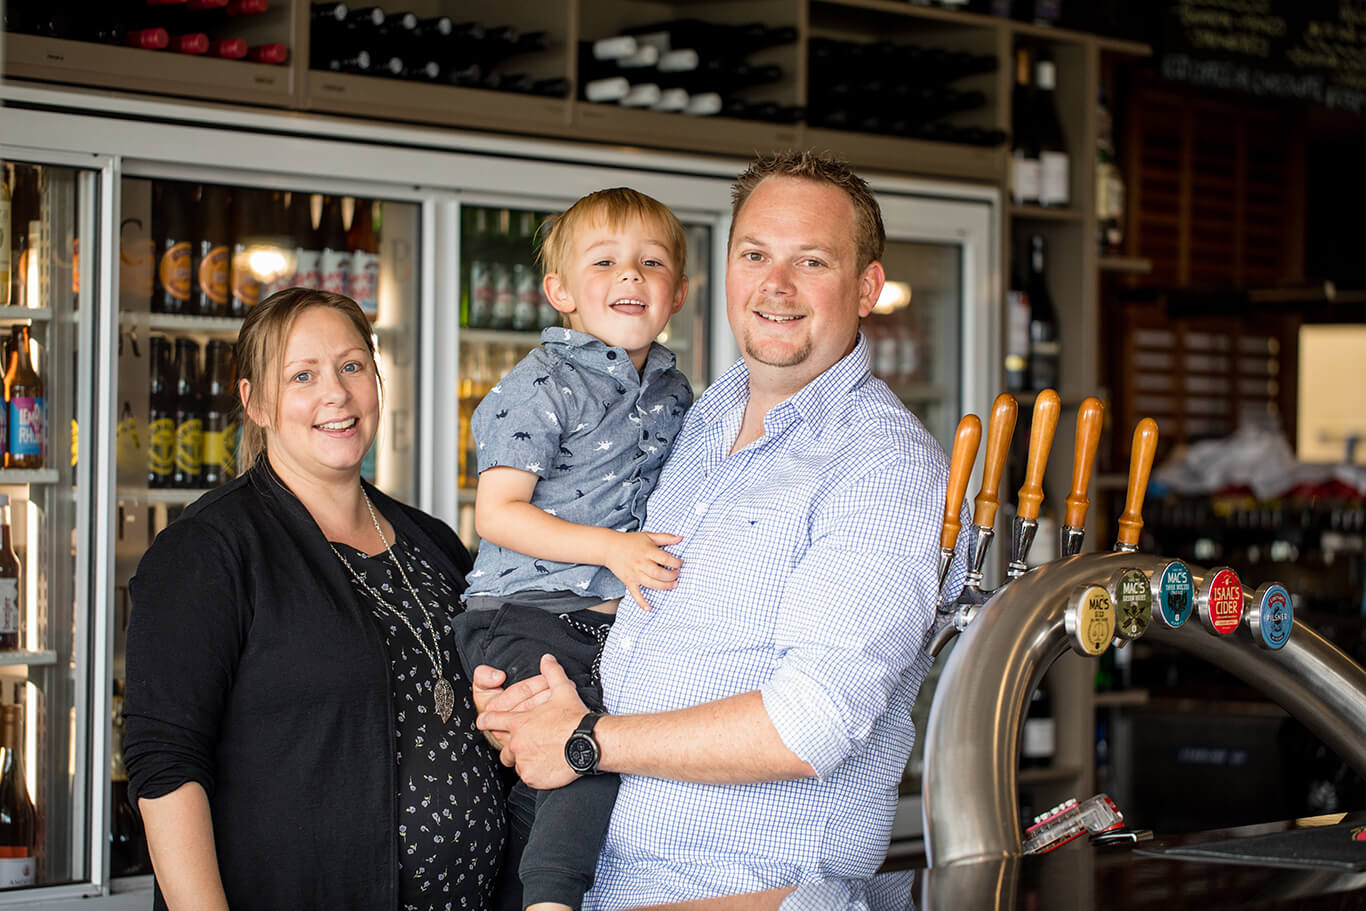 Owners of the Fat Duck Gastropub Te Anau, Cam, Selina and Eli, standing at the Fat Duck bar